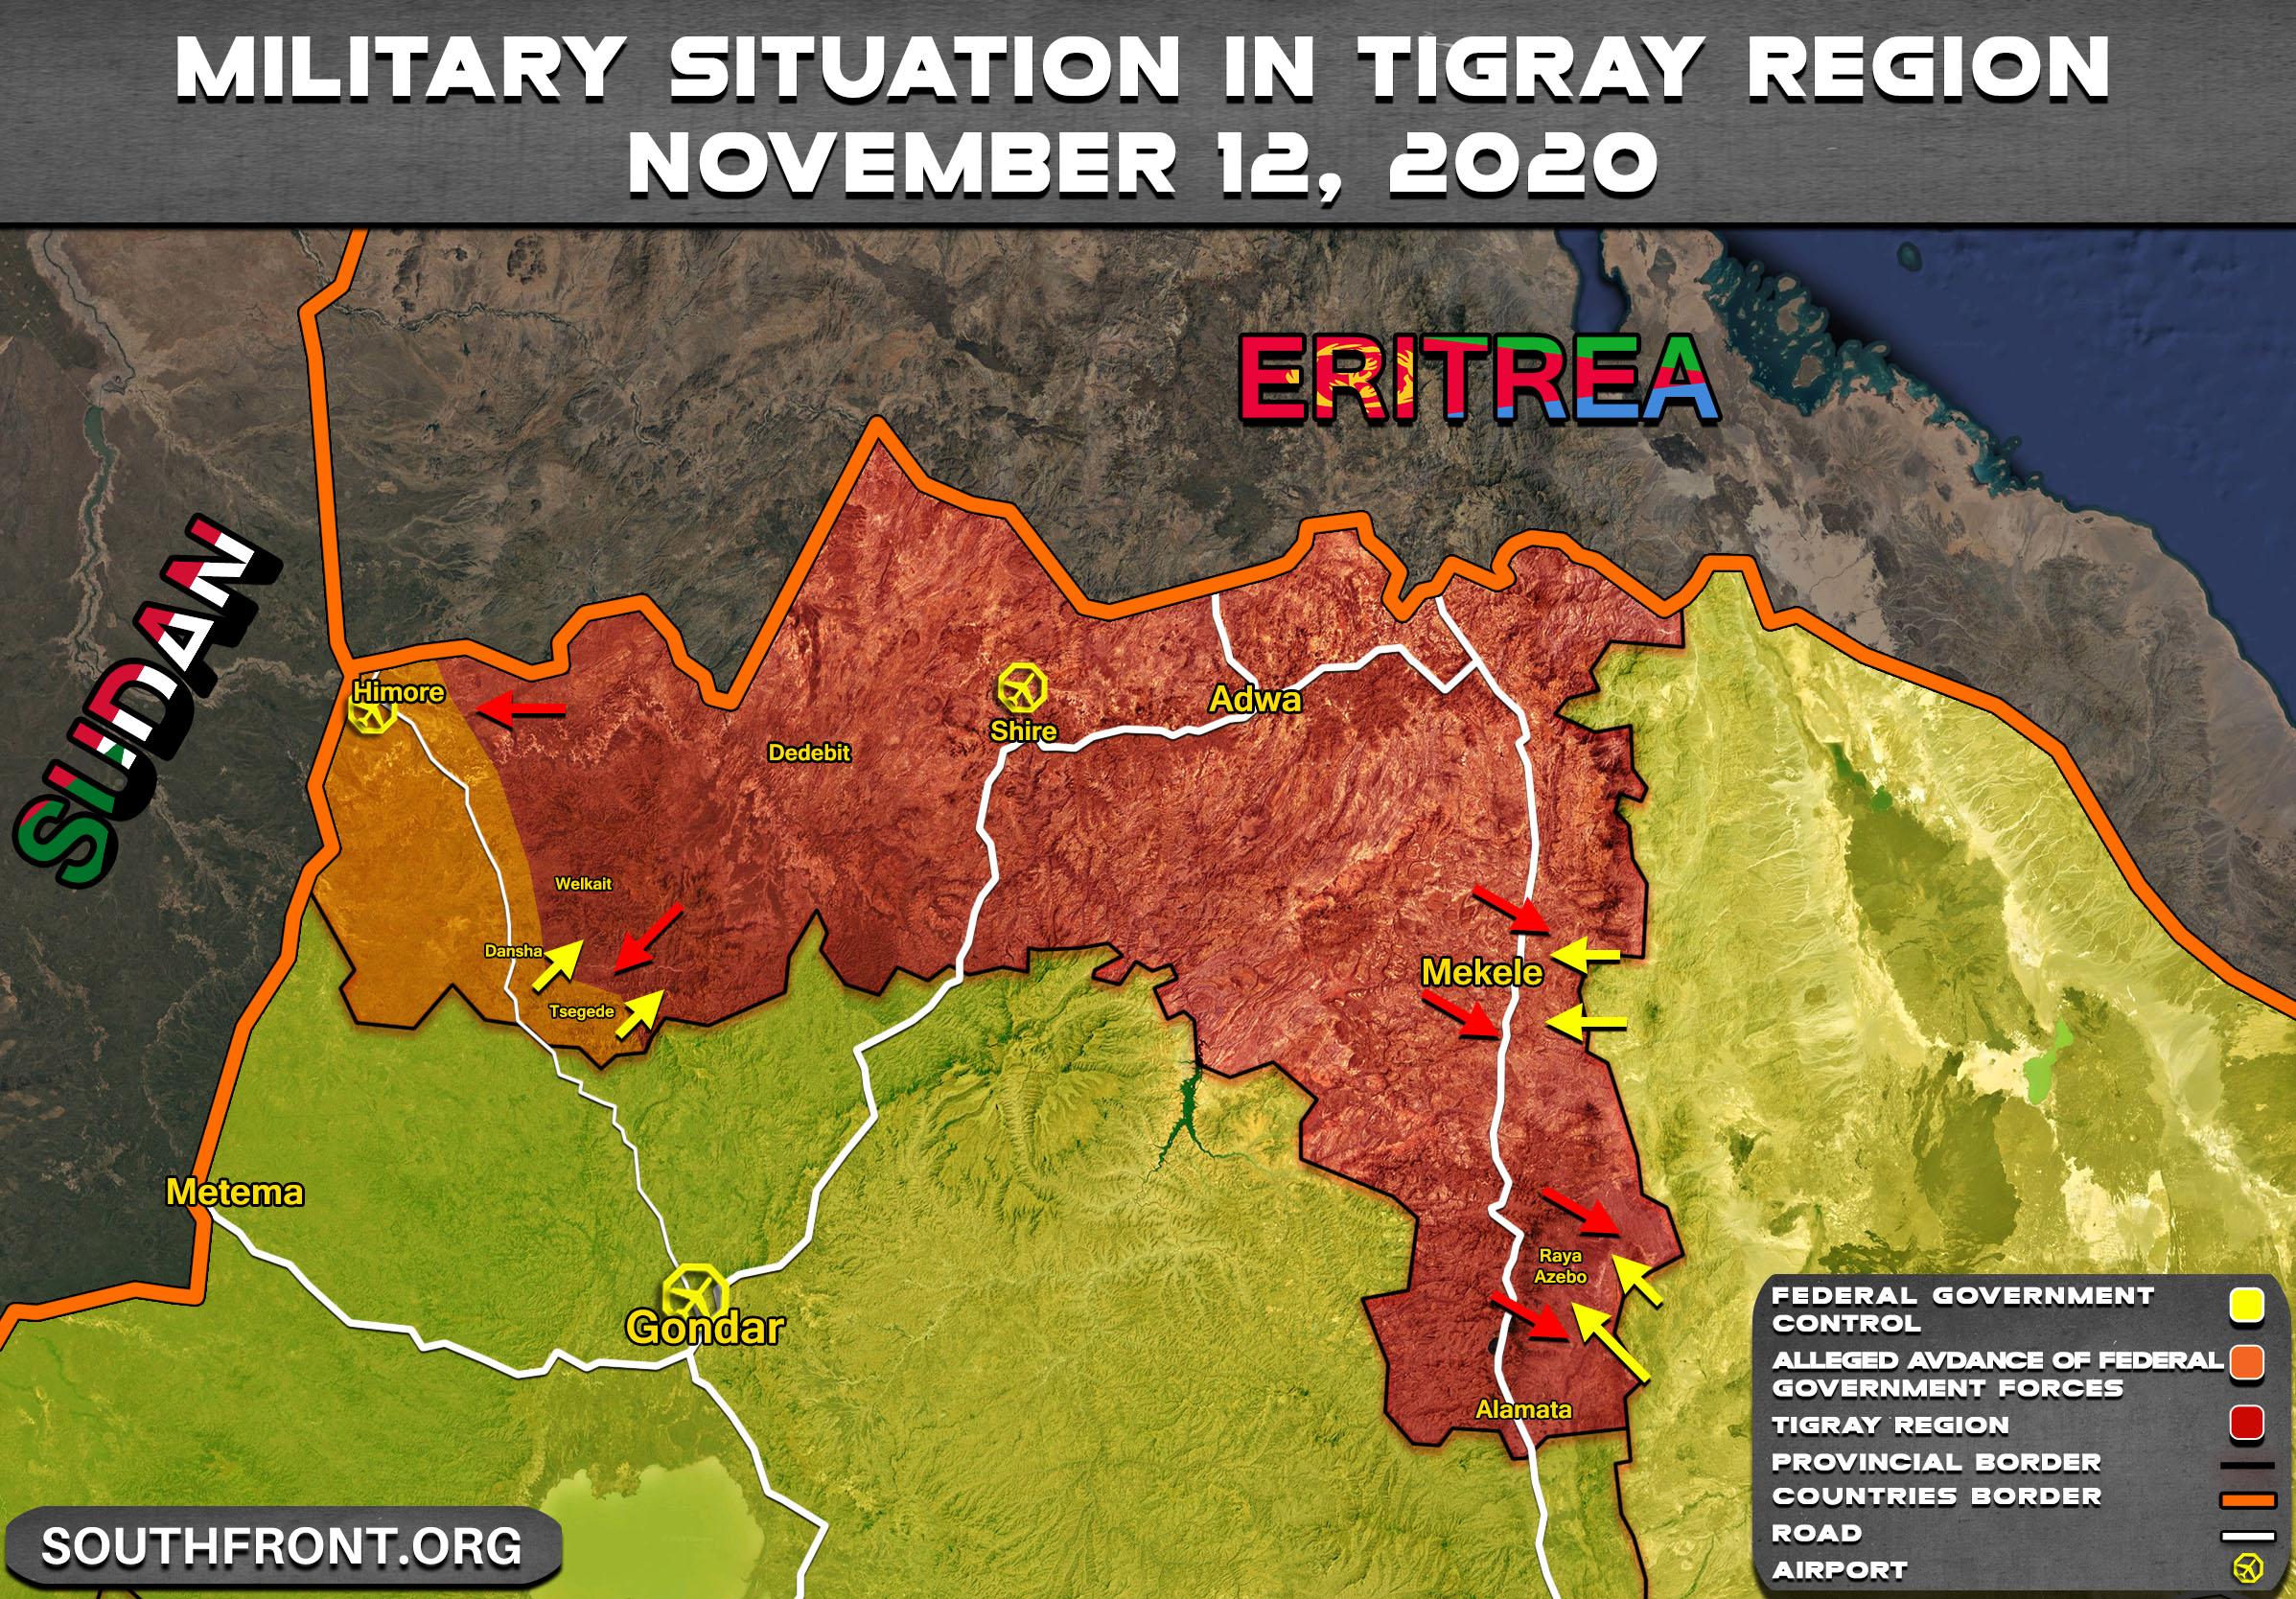 Ethiopian PM Claims His Forces 'Liberated' Western Part Of Tigray